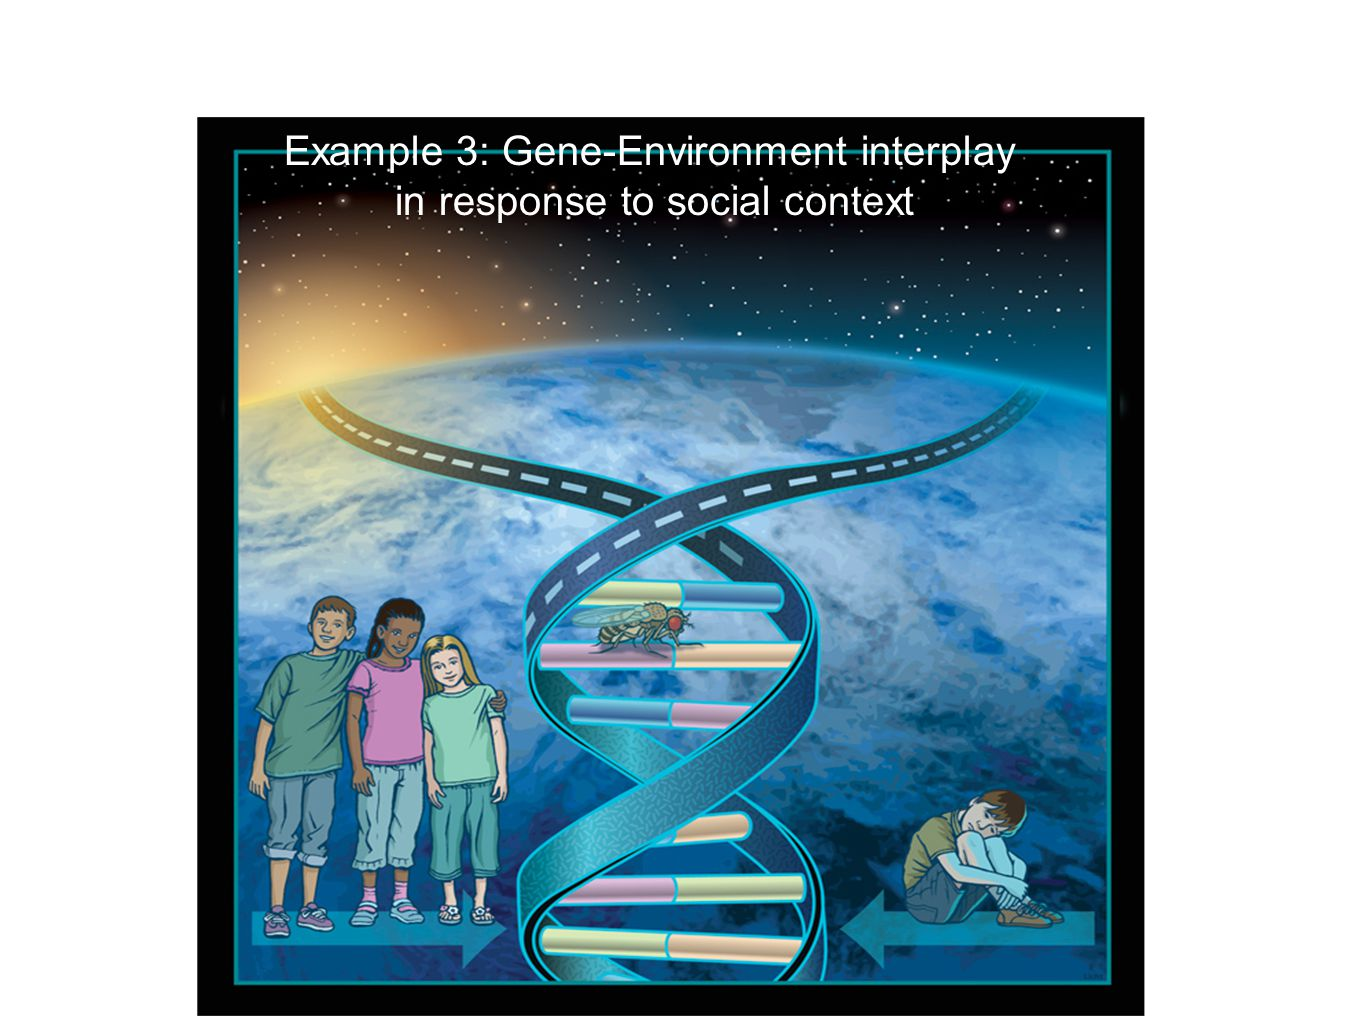 Example 3: Gene-Environment interplay in response to social context